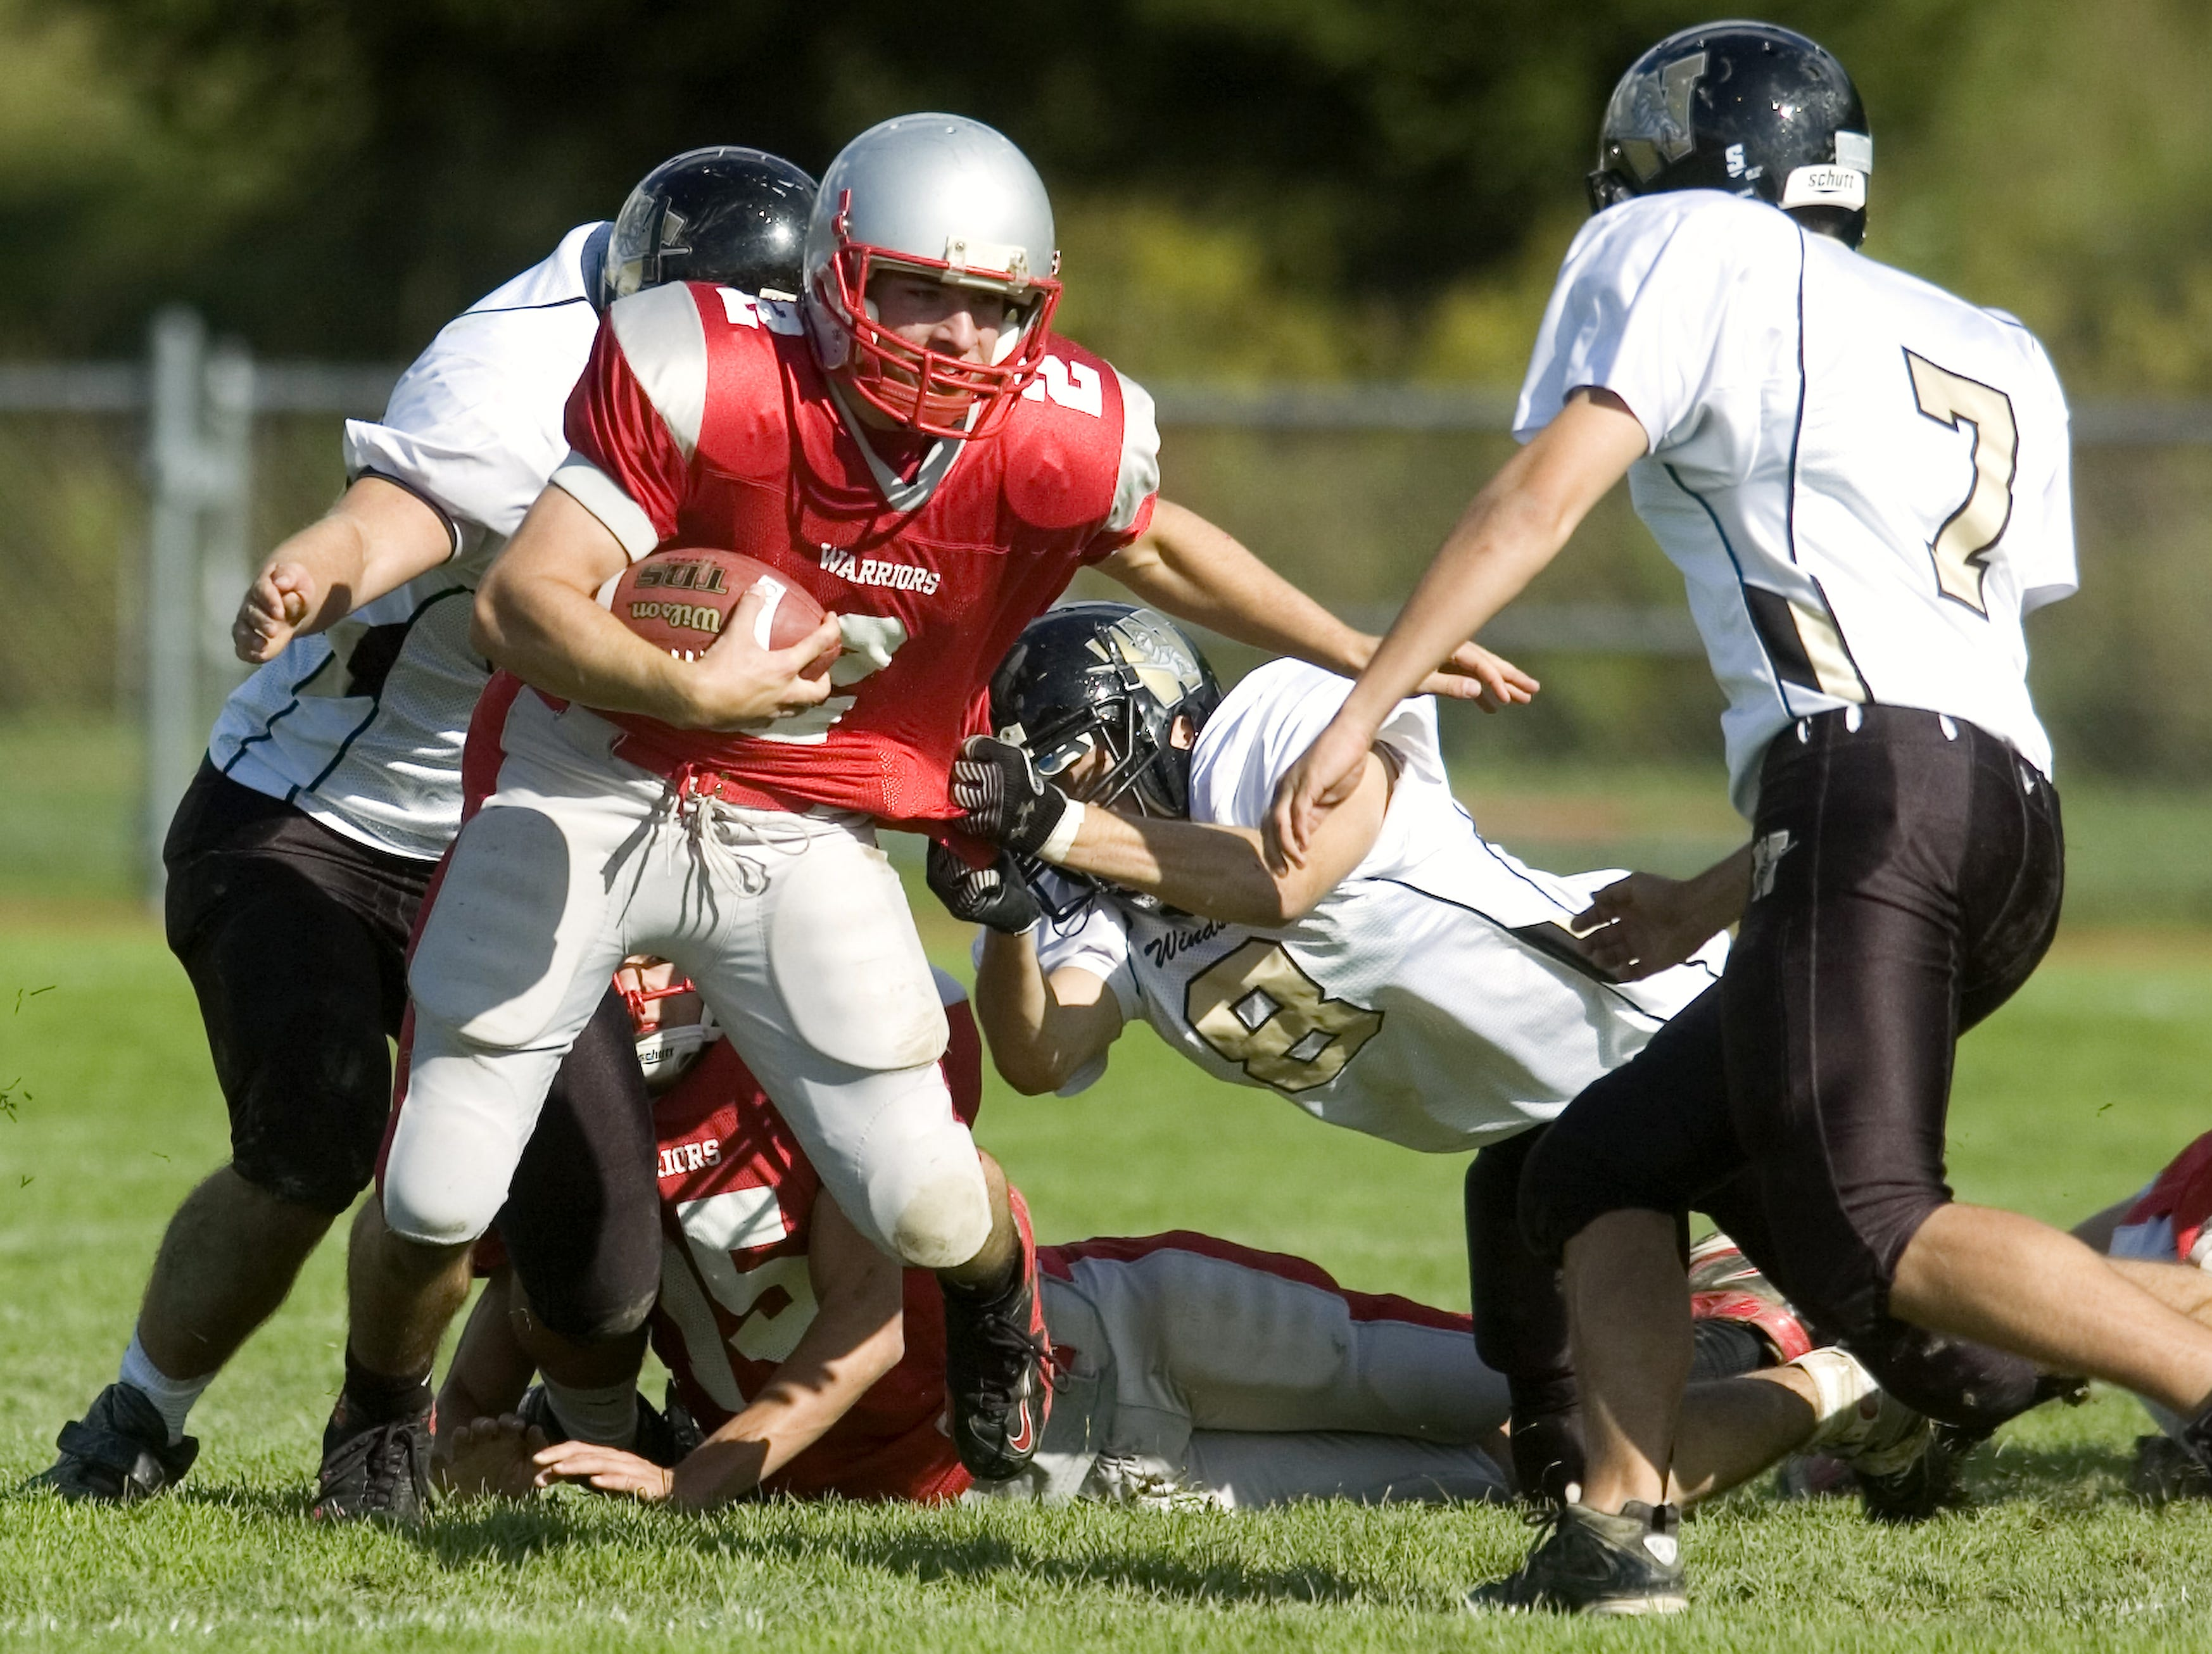 From 2009: Windsor's Danny Schreiber (8) hangs on to Chenango Valley's Ricky Ruffo's jersey as teammate Lukas VanZandt  comes in from right to defend in the fourth quarter of Saturday's game at CV.